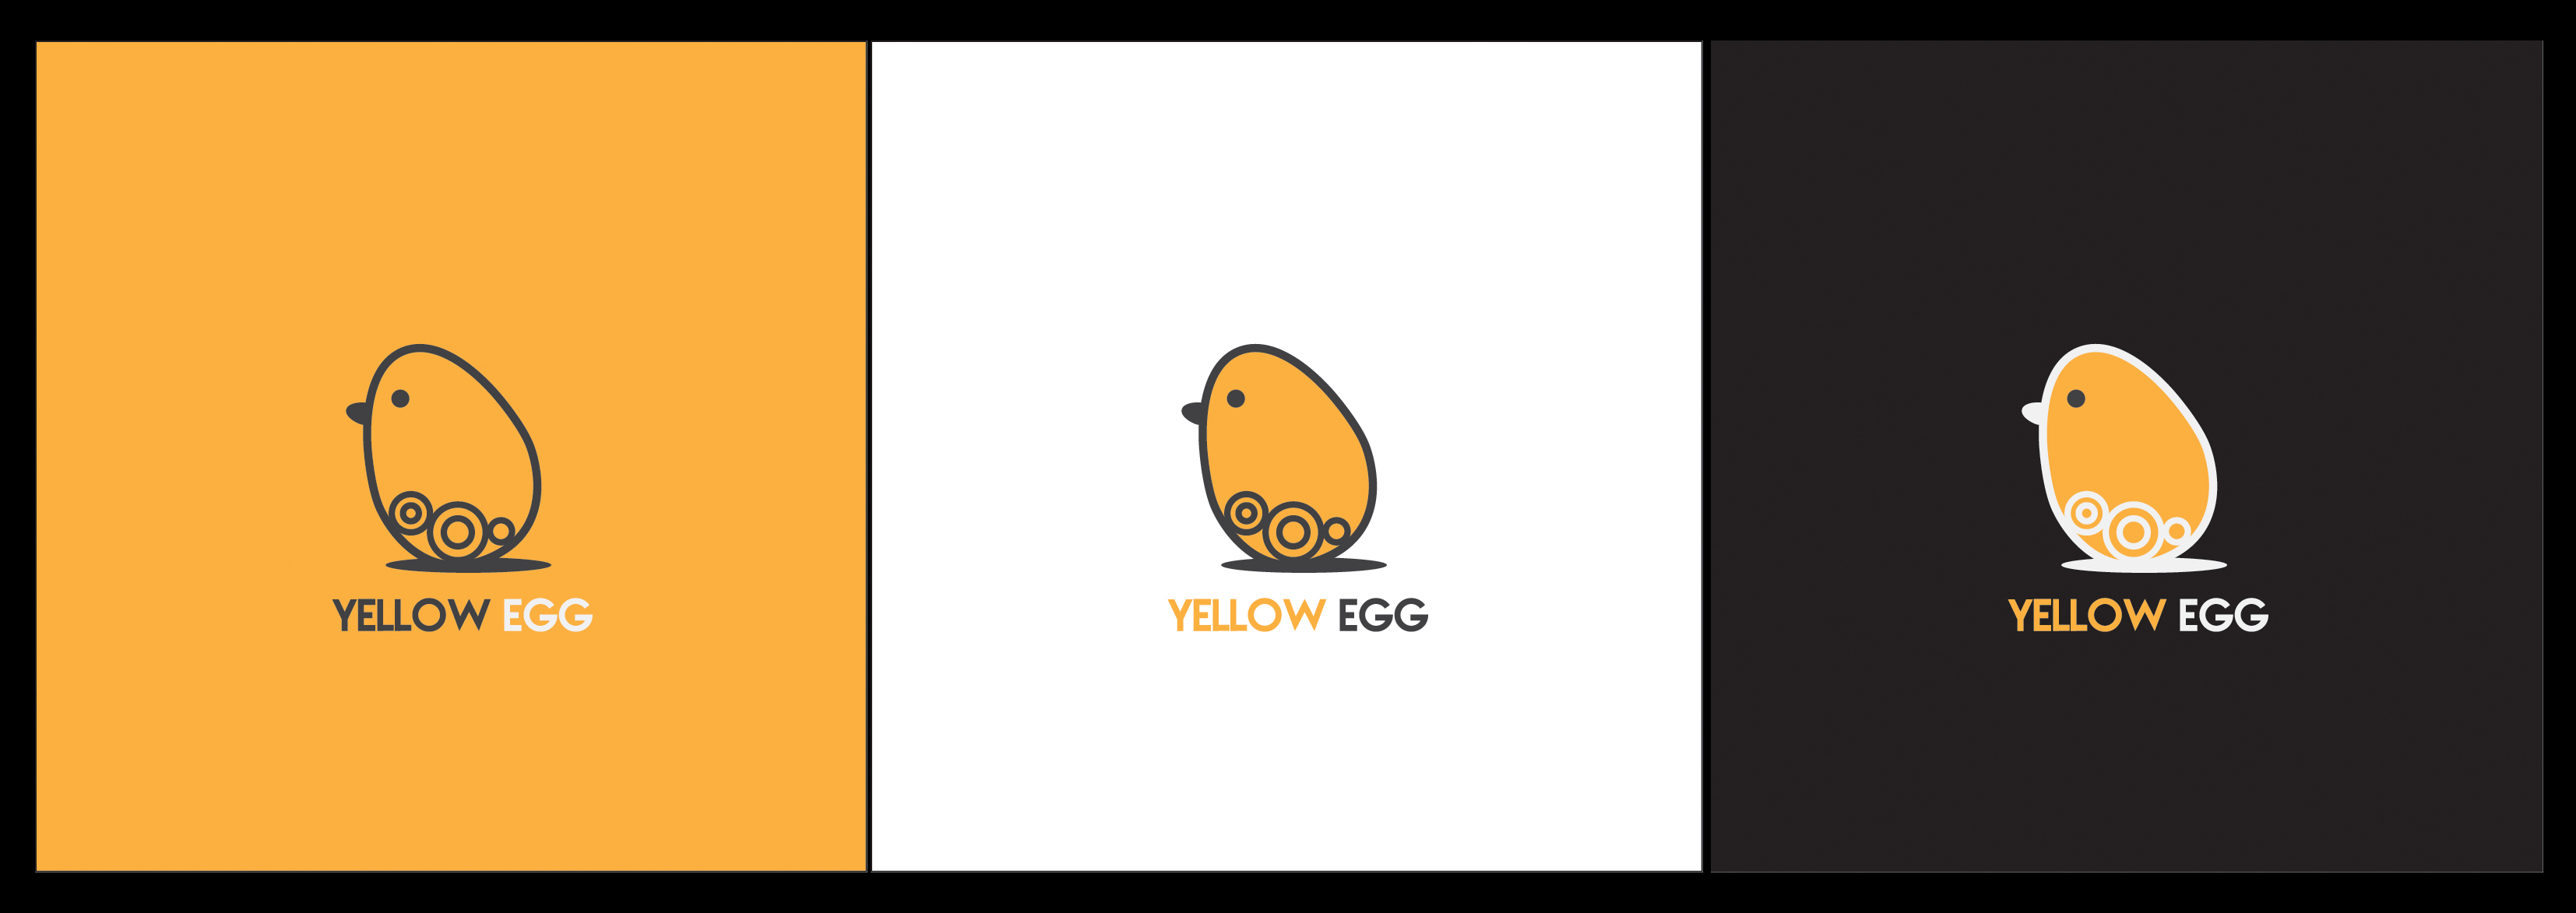 Yellow Egg (2014)